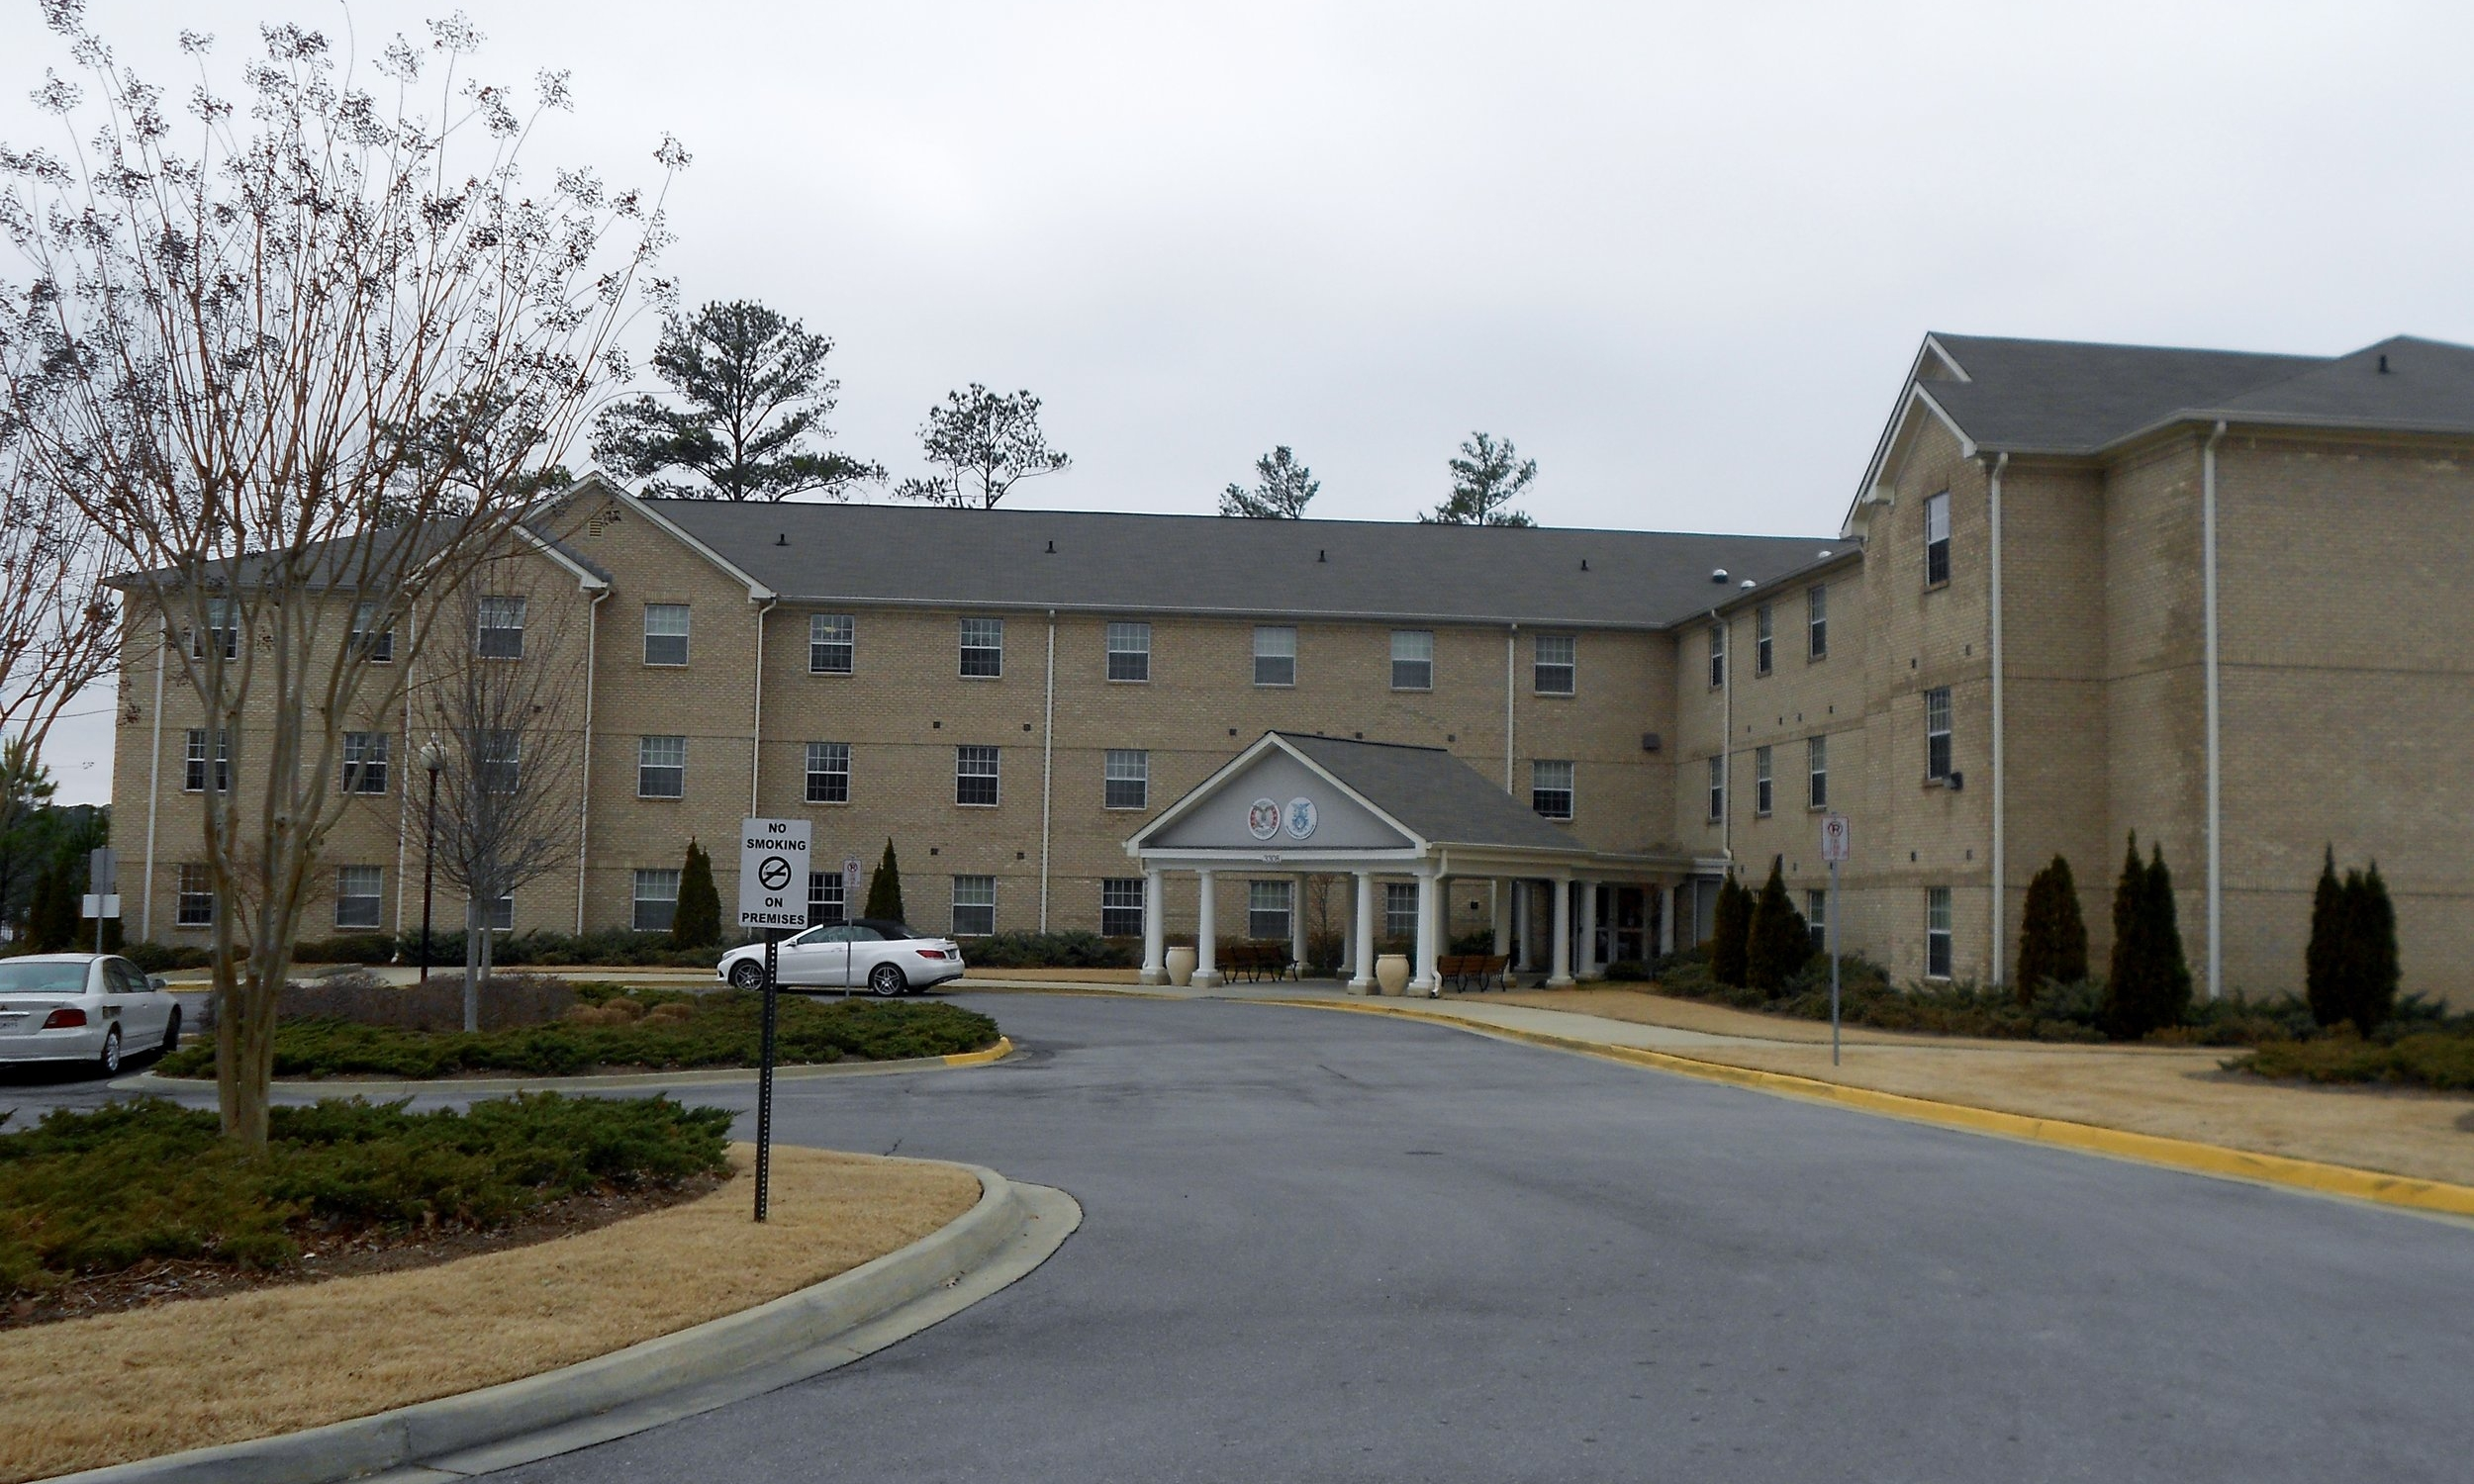 AHEPA Penelope District One Apartments - 3308 Oakhill DriveHoover, AL 35216(205) 824-8185TTY: (800) 421-1220 or 711 (English)TTY: (800) 676-4290 or 711 (Español)info@ahepahousing.org